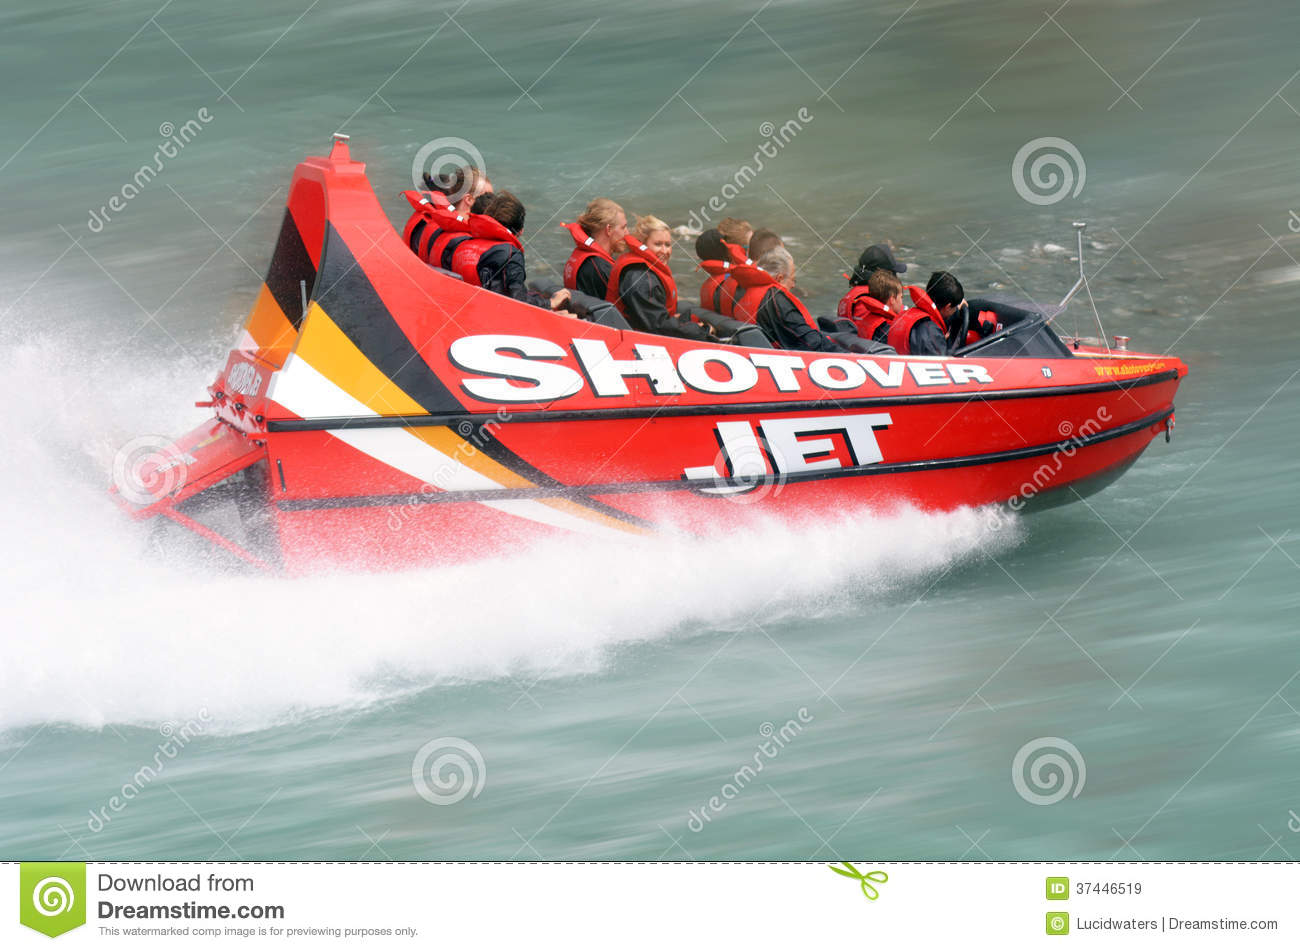 High Speed Jet Boat Ride - Queenstown NZ Editorial Stock Image - Image: 37446519